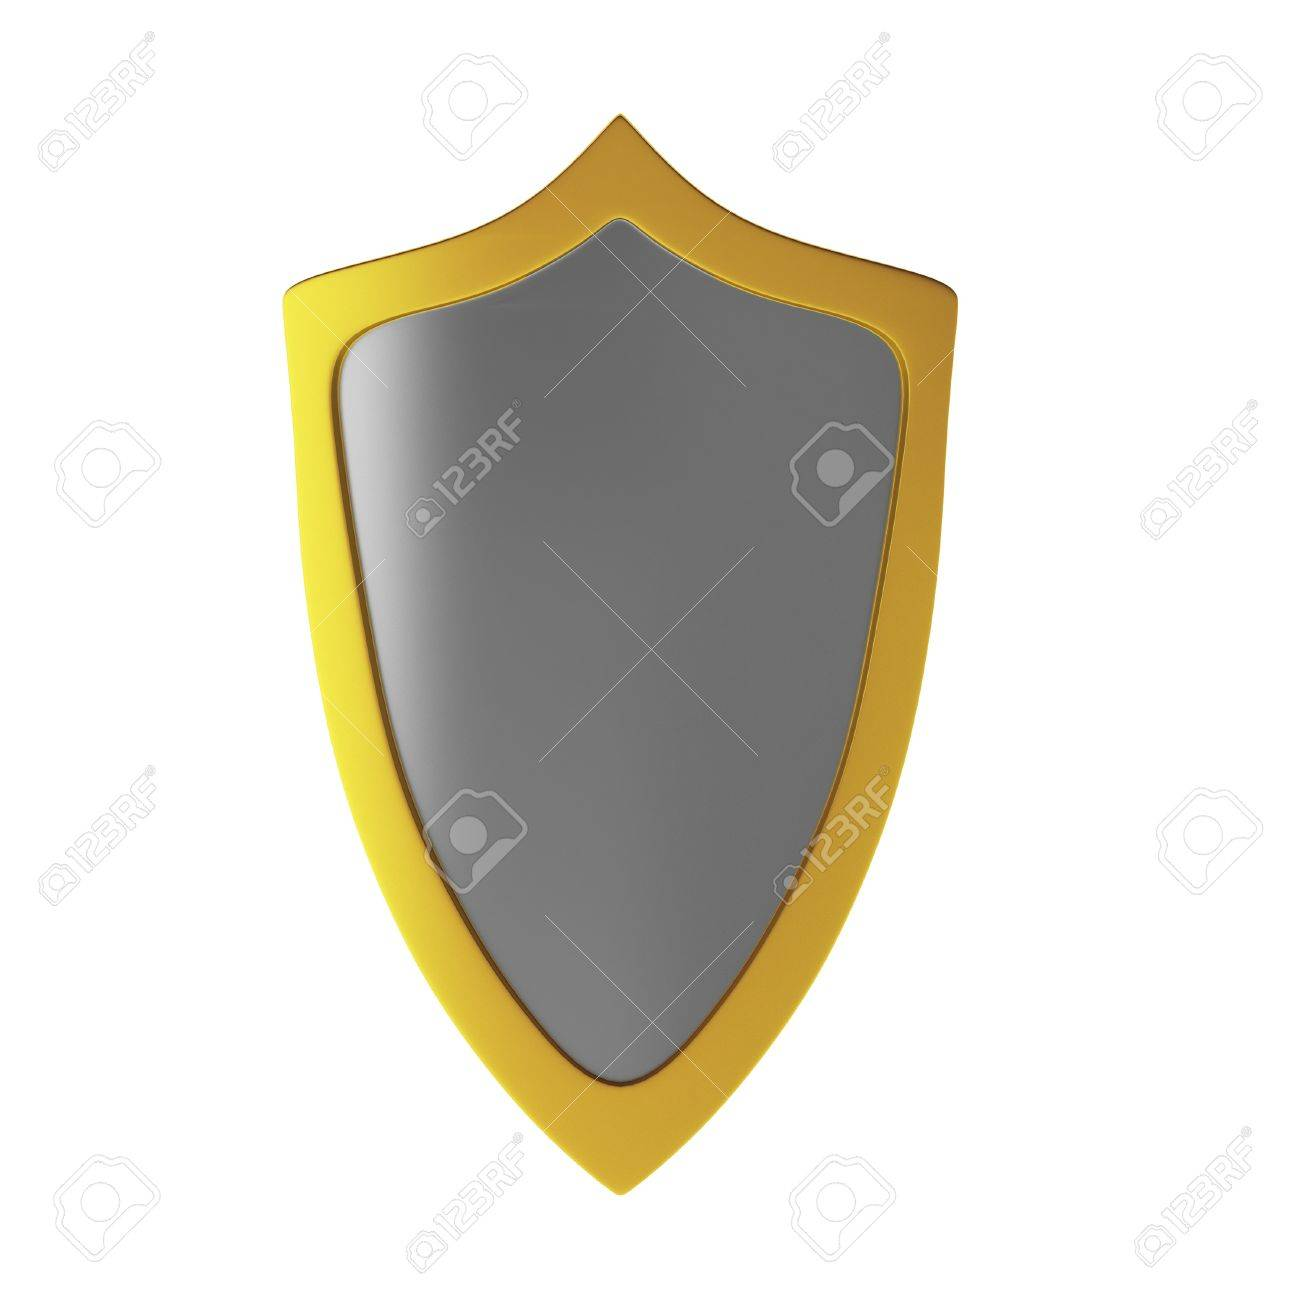 3d render of shield Stock Photo - 9406137